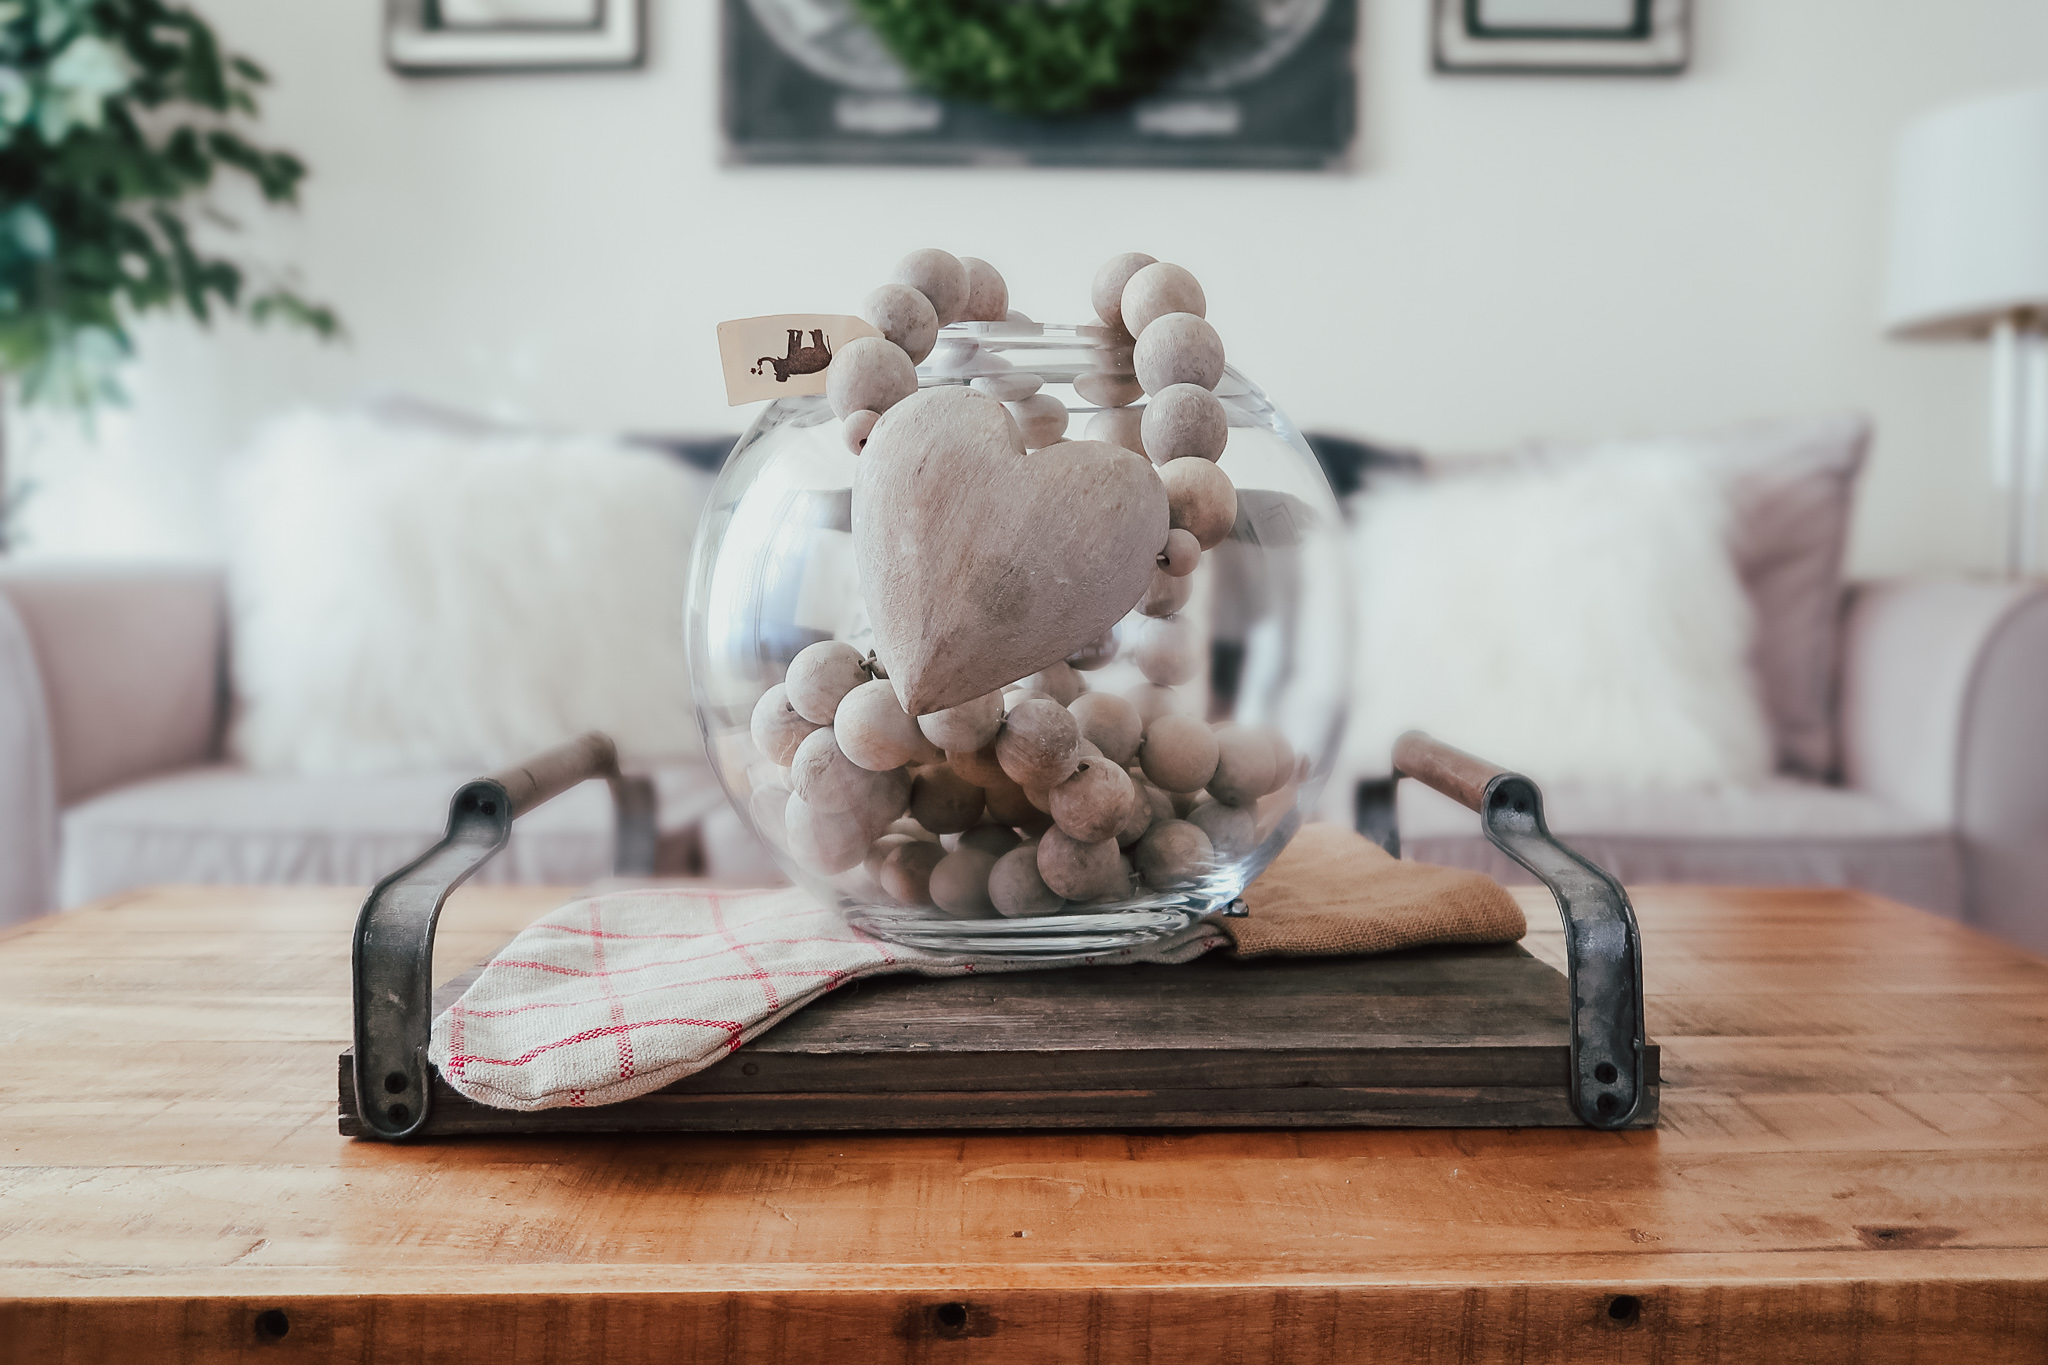 5-ways-to-cozy-your-home-holiday-decor-15.jpg